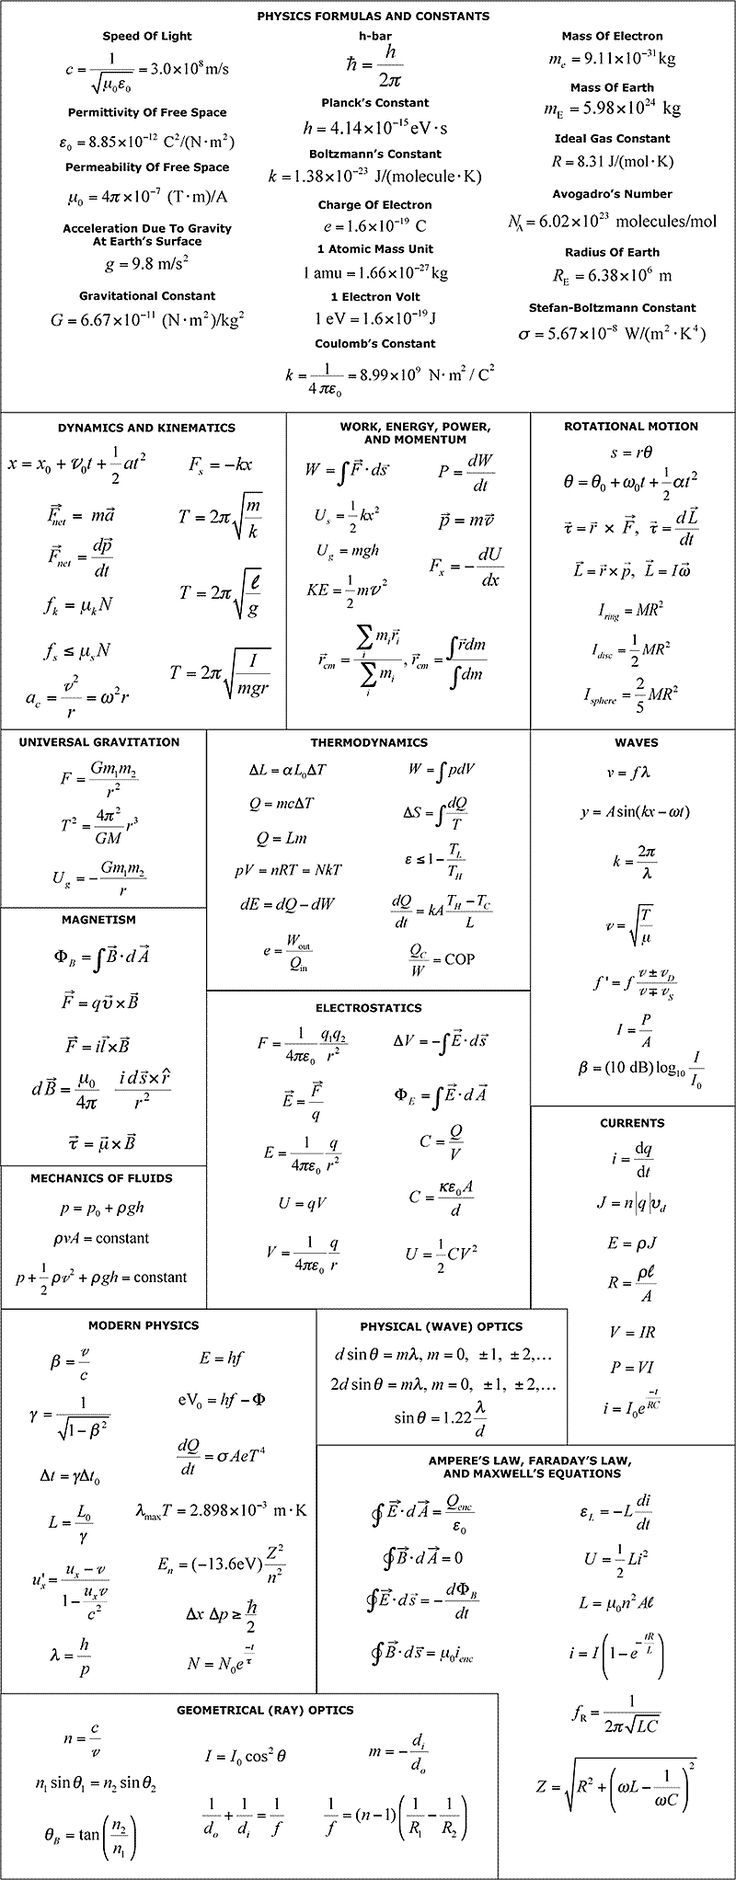 8 Best Electronics Images On Pinterest Electrical Projects Metal Detector Circuit Electronic Circuits And Diagramelectronics General Formula Sheet Helpful For Students Of Physics Statistical Mechanicals Electrostatics Quantum Mechanics